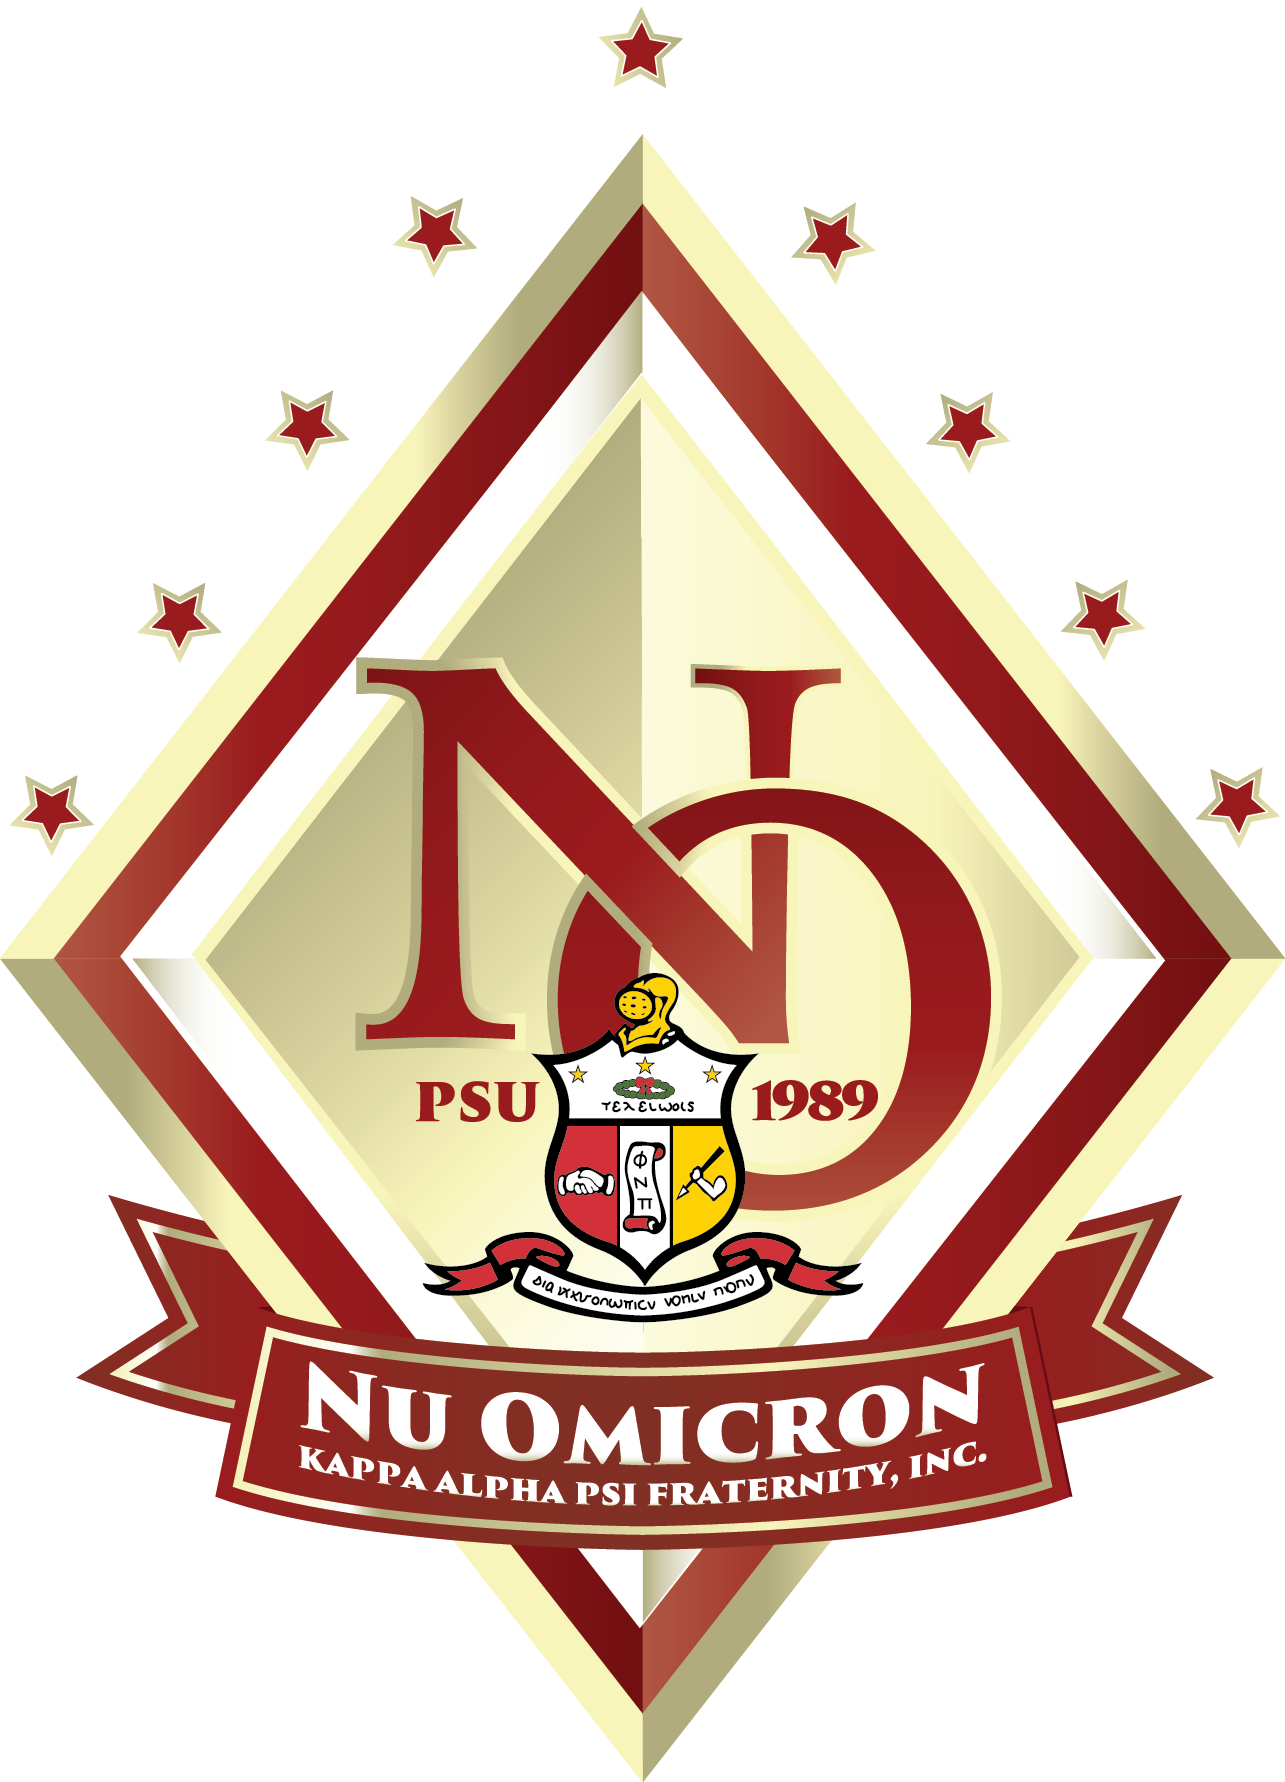 Our Fraternity Nu Omicron Chapter Of Kappa Alpha Psi Fraternity Inc